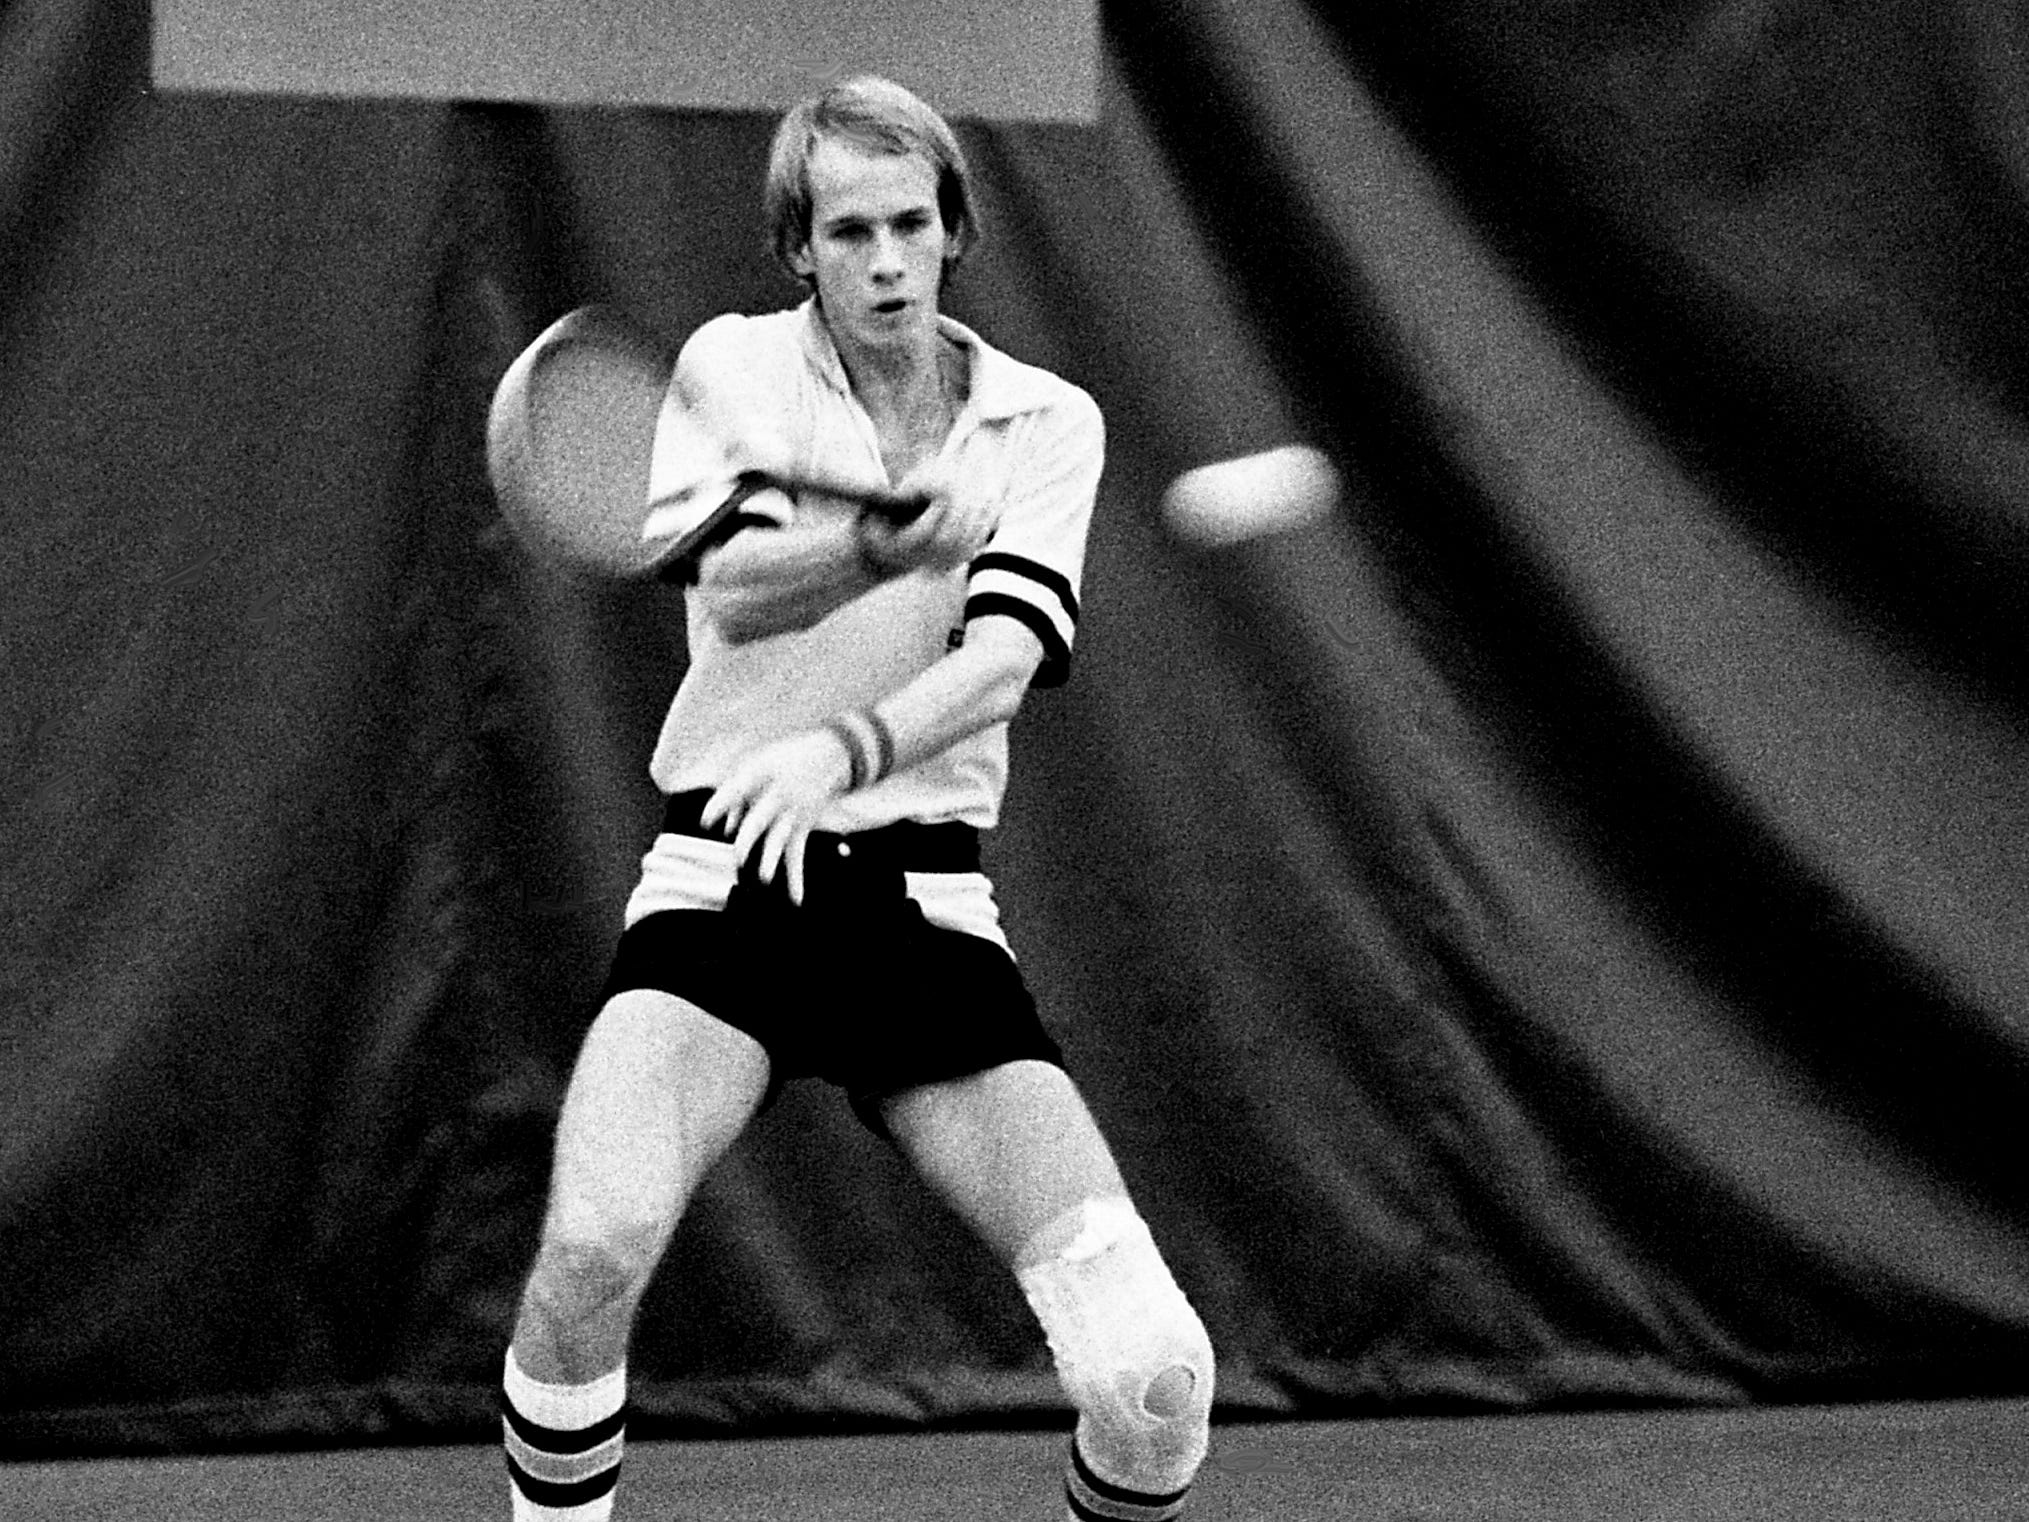 Vanderbilt's Tim Stewart returns a shot from Tennessee's Jim Gillespie during his 6-4, 3-6, 6-3 victory in the SEC Indoor Championships at Vanderbilt on Feb. 24, 1979, to advance to the final.